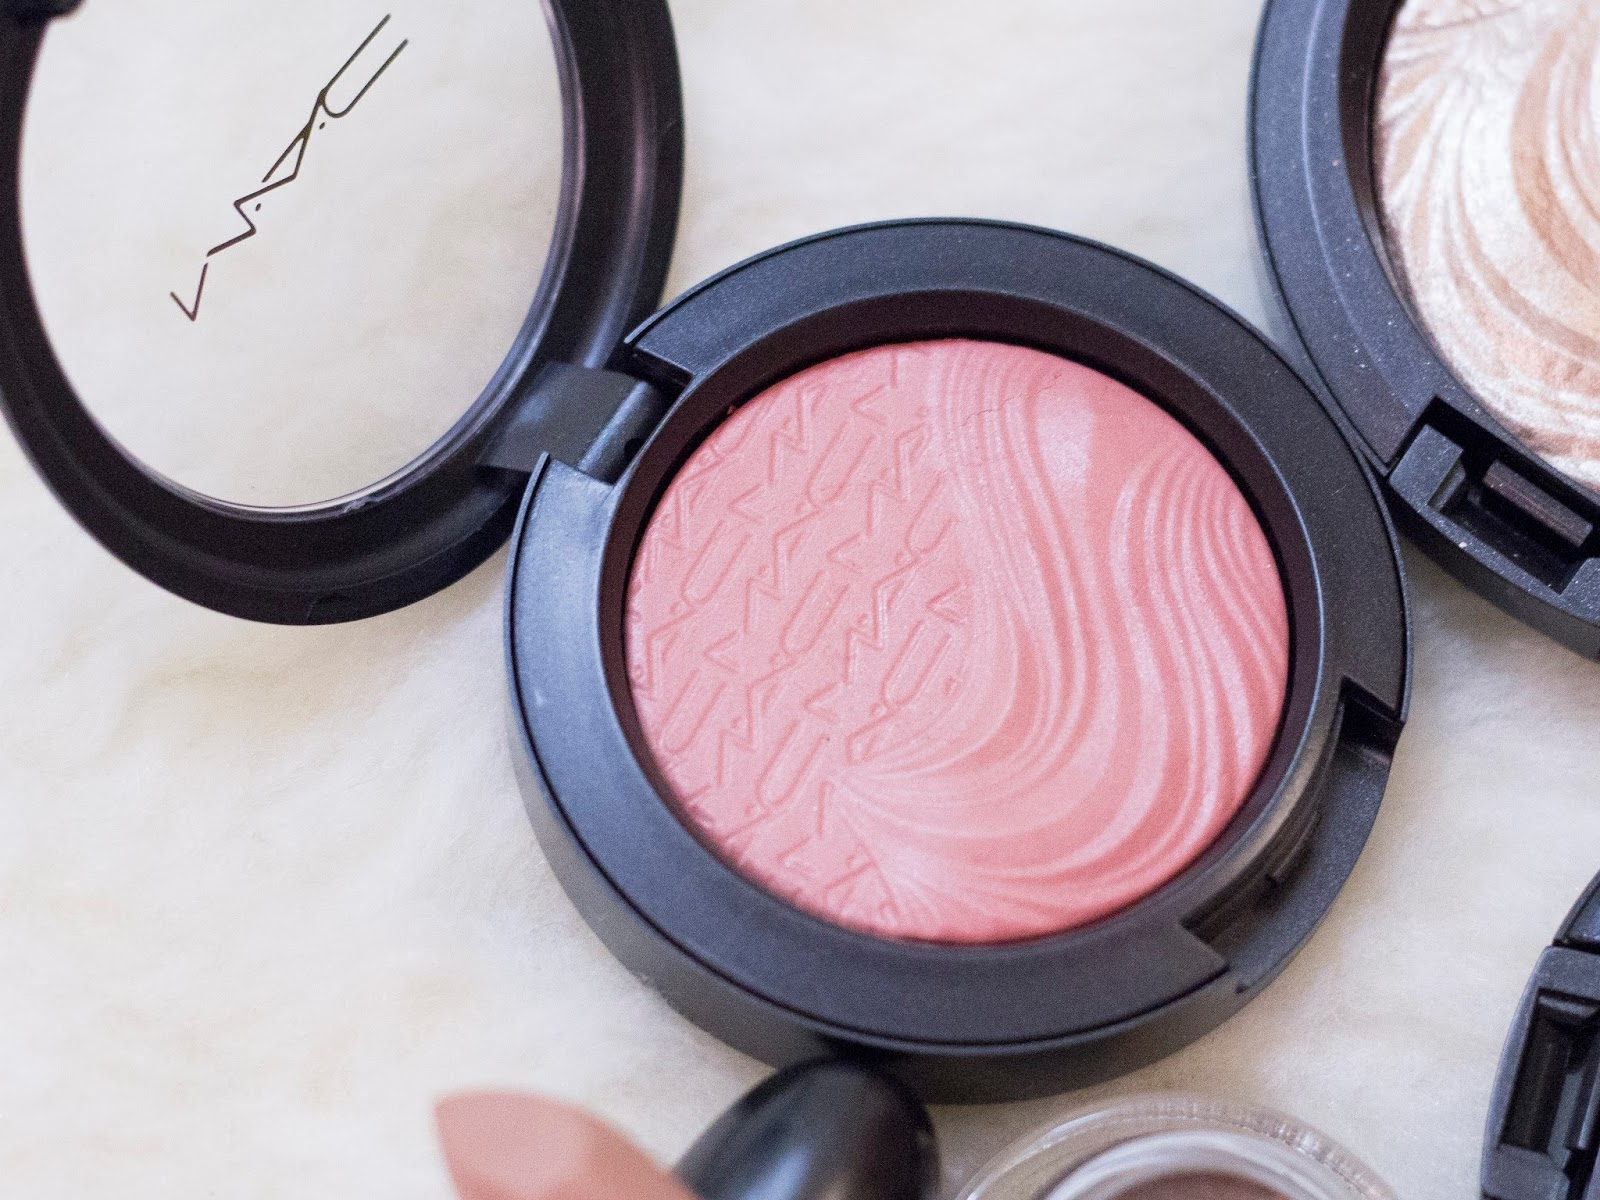 MAC Autoerotique blush